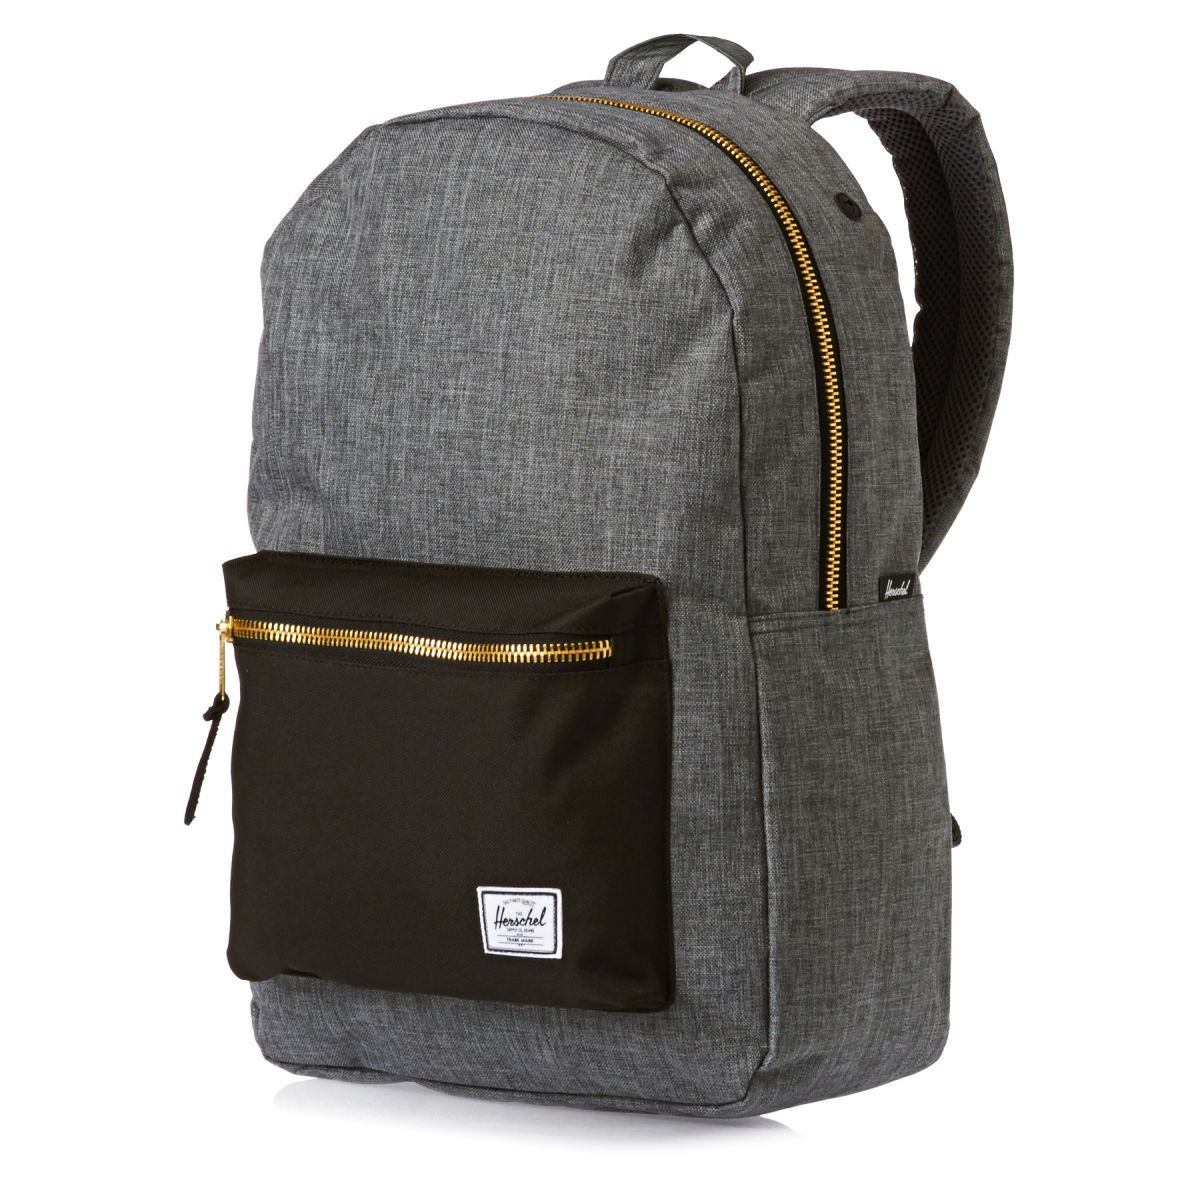 0b76bb99a6 Herschel Backpacks - Herschel Settlement Backpack - Charcoal Crosshatch  black